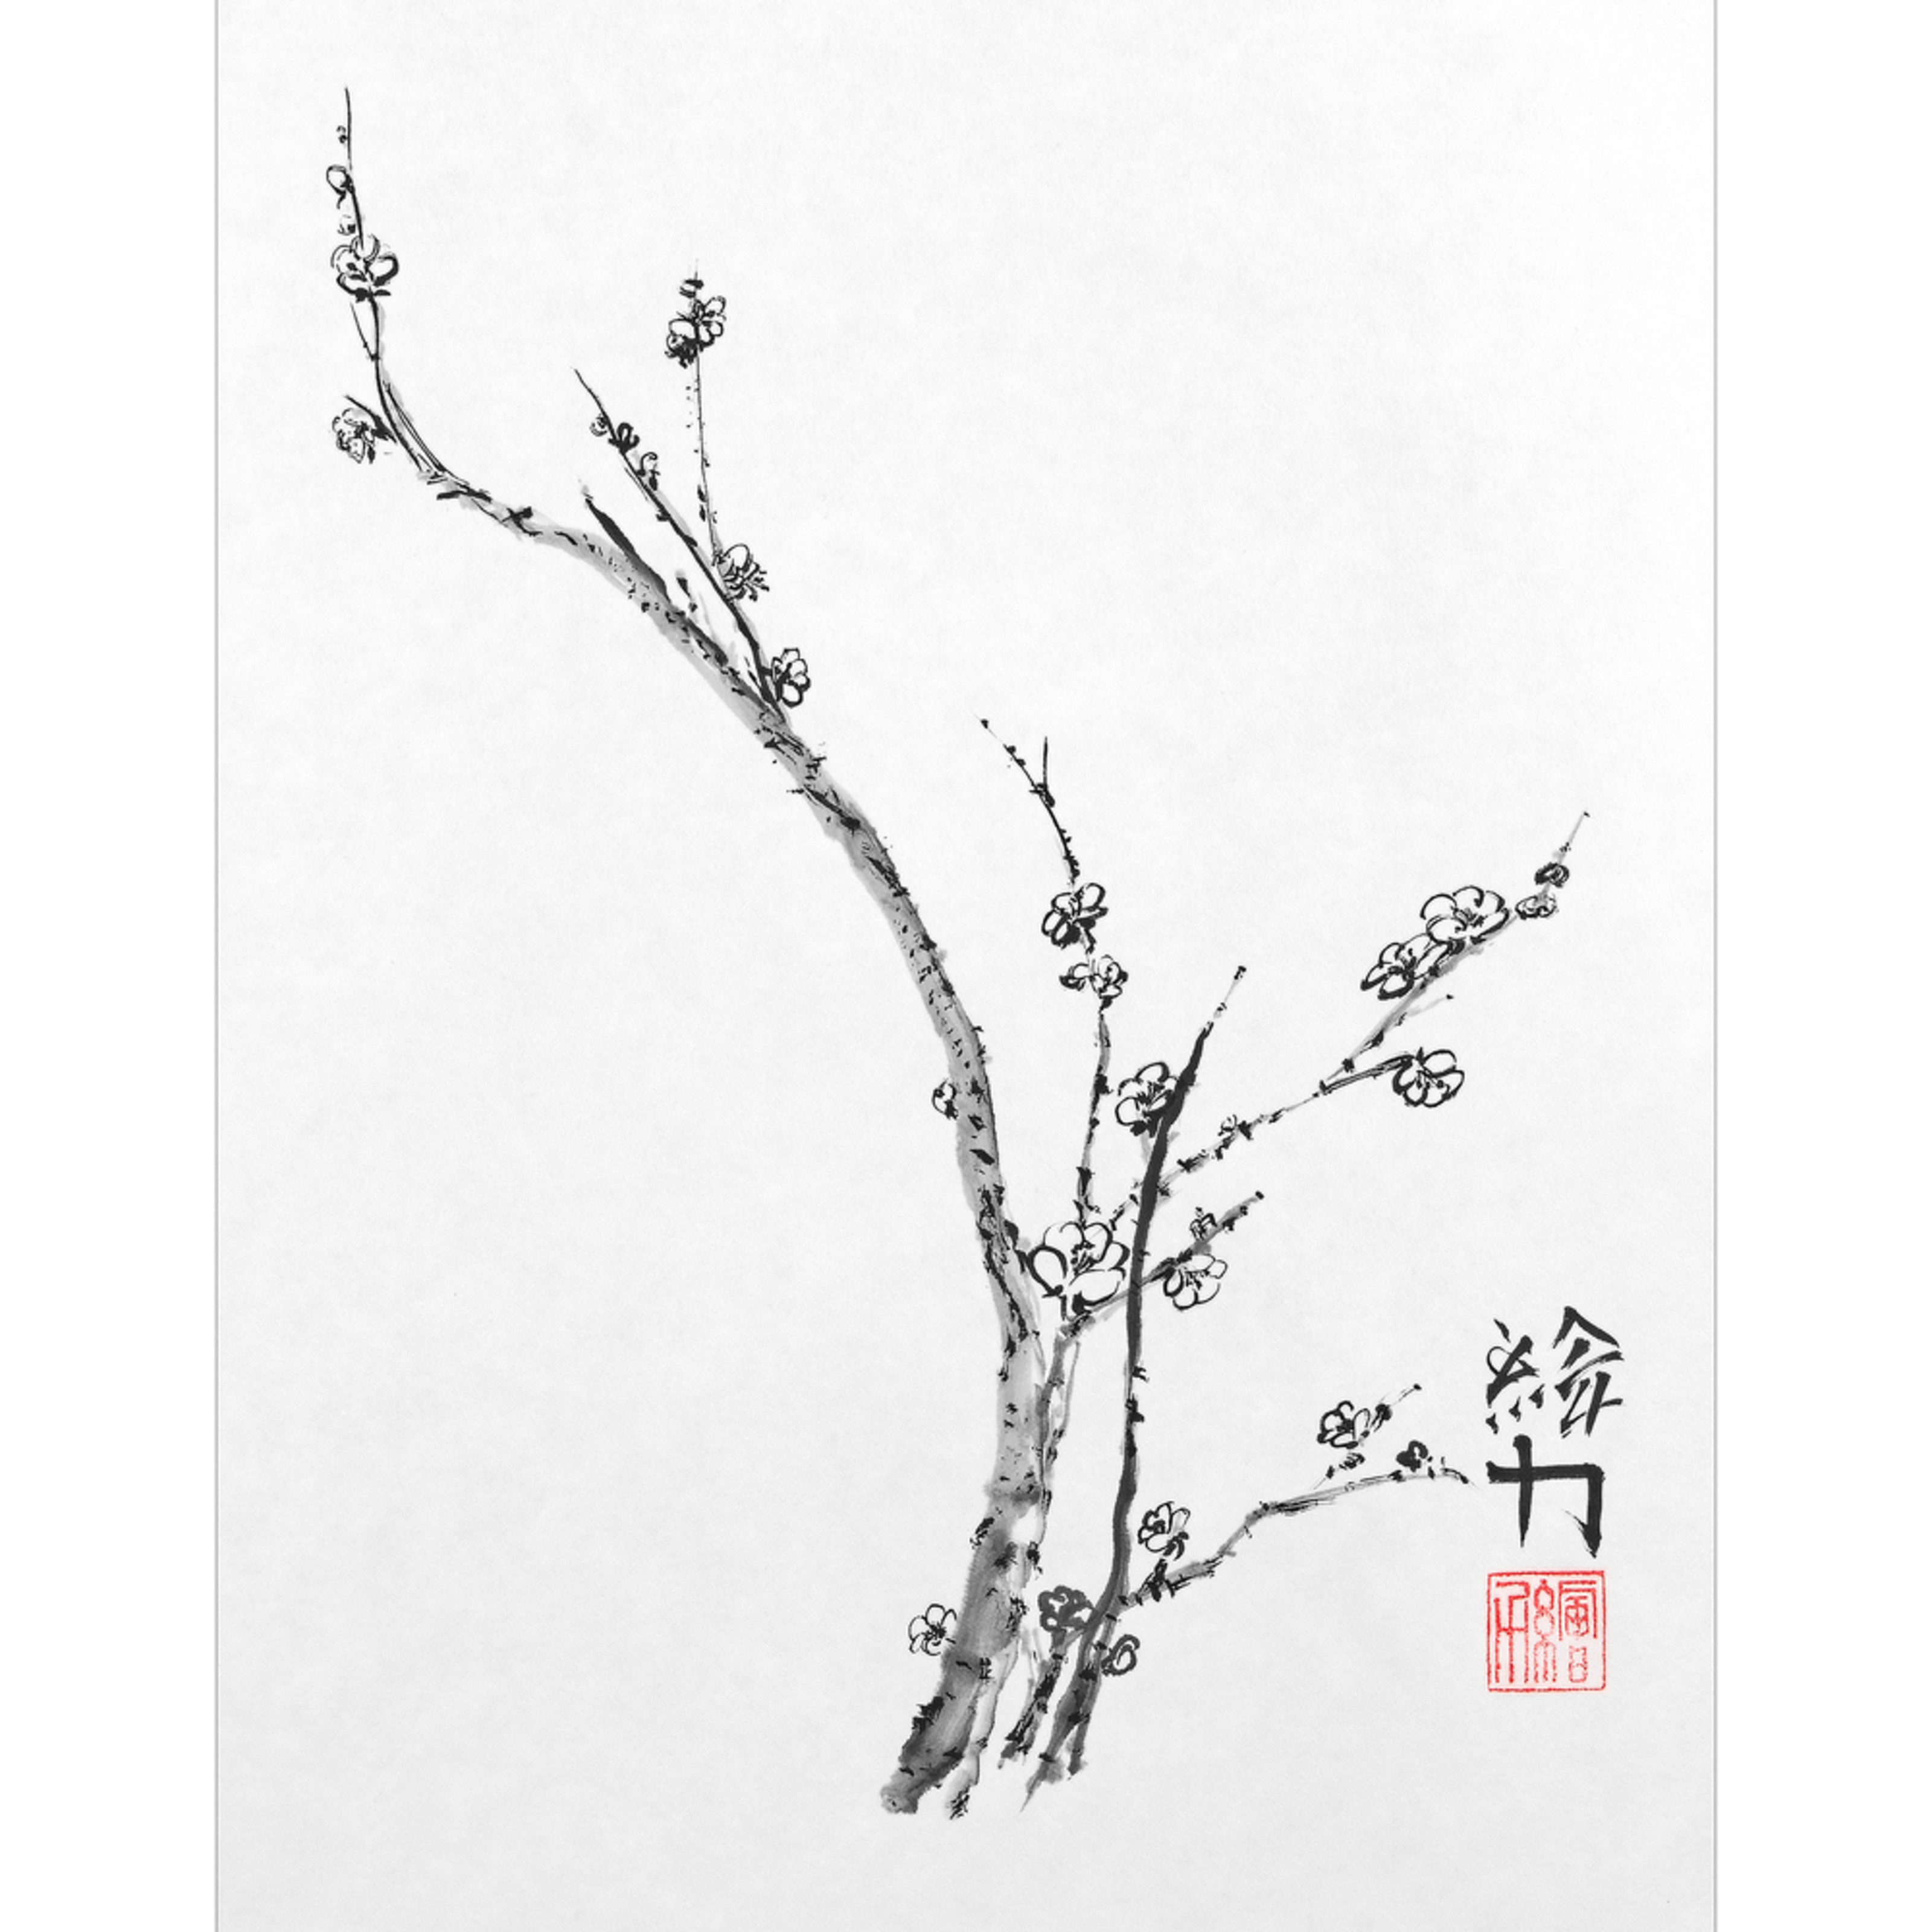 Hombretheartist sumie plumblossom 4 forprint 111219 yonx2i